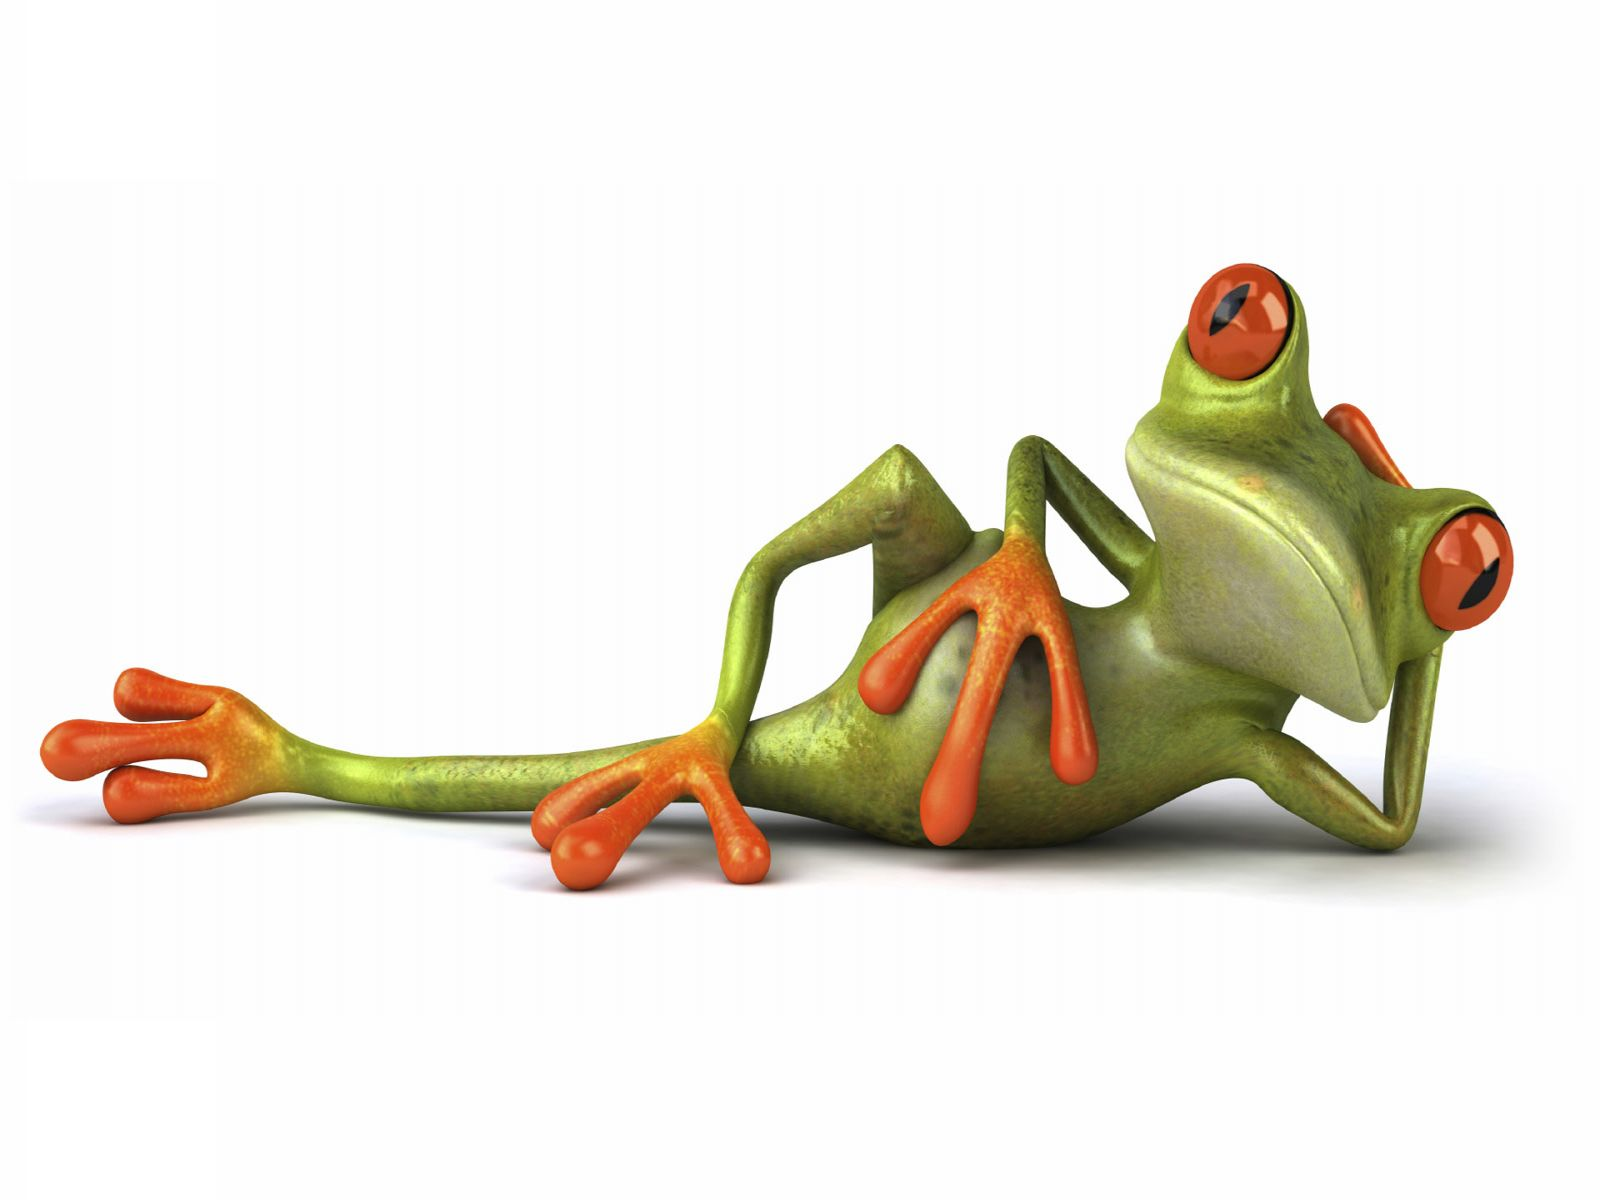 ... Free Frog 3d Wallpaper For Desktop Resolution 1600x1200 81217 .